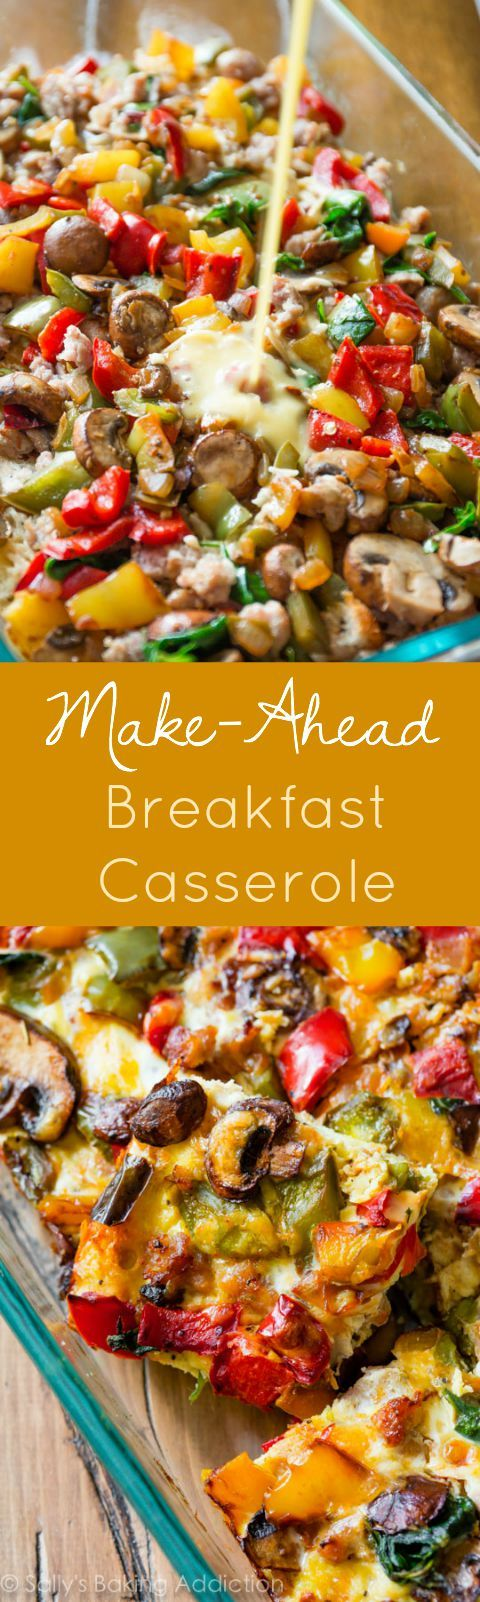 Make ahead easy breakfast recipes